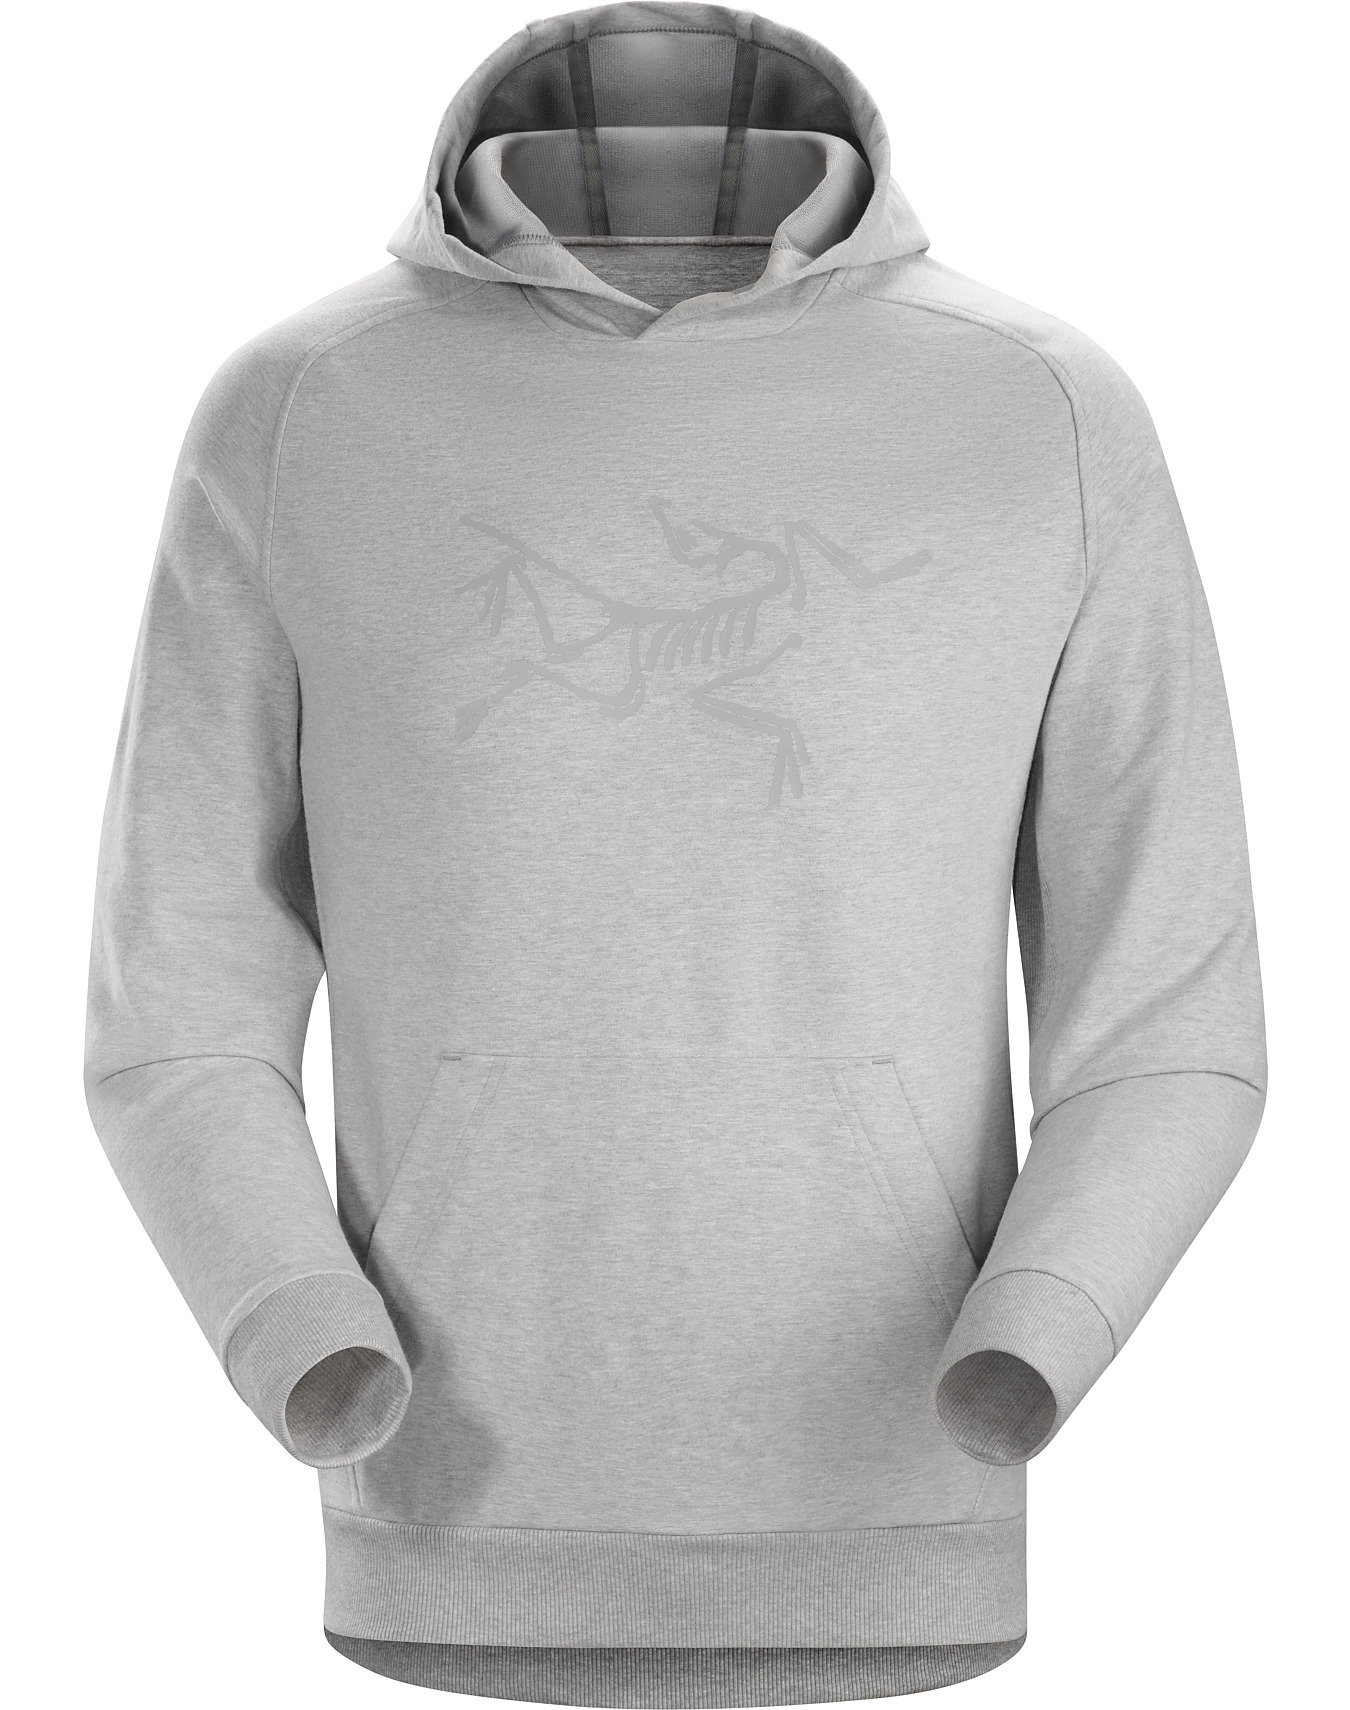 Archaeopteryx Pullover Hoody / Mens / Arc'teryx